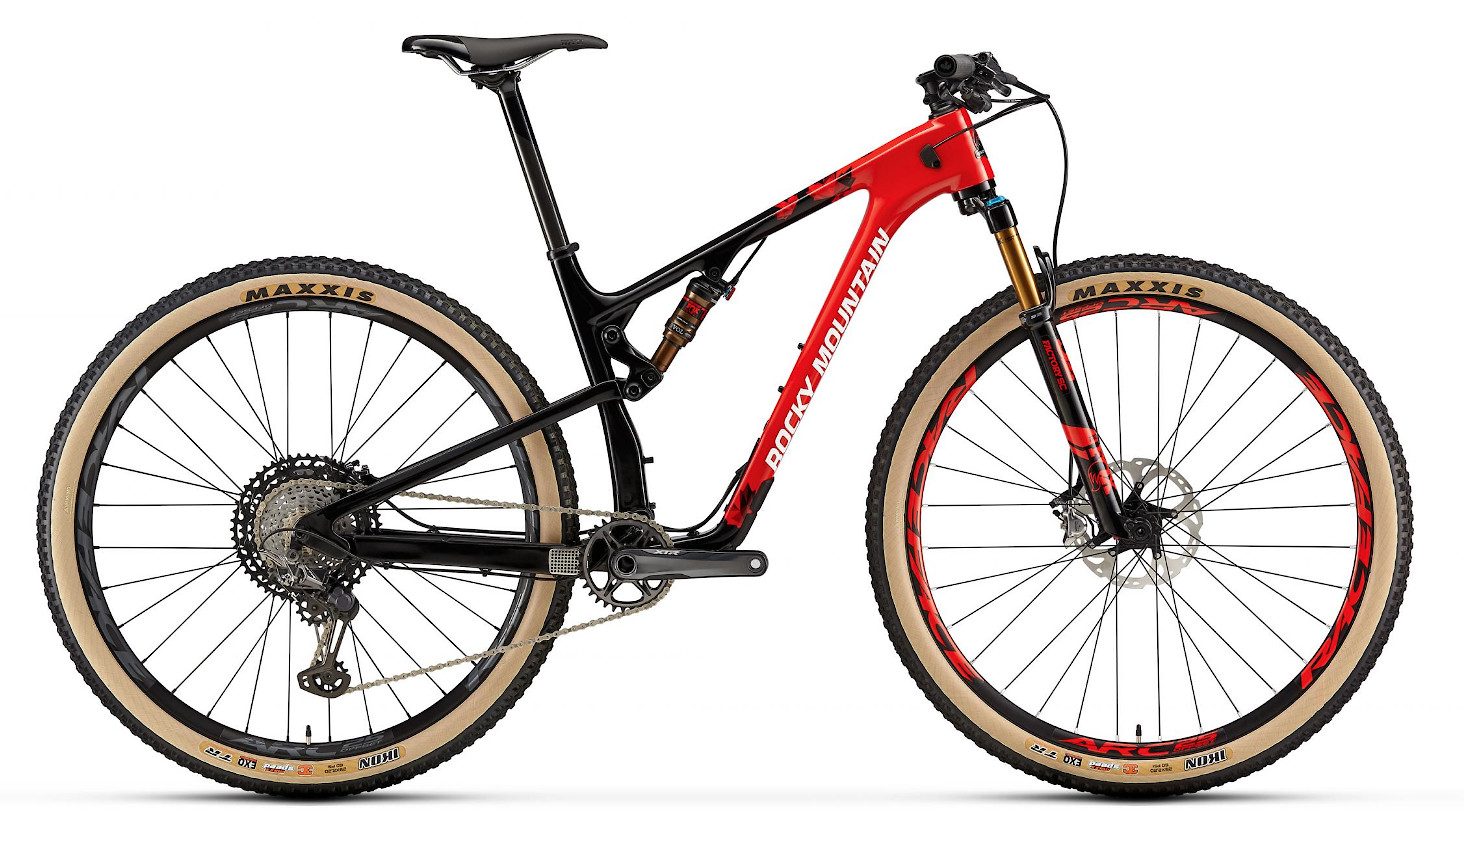 2019 Rocky Mountain Element Carbon 90 XCO Edition - Red and black